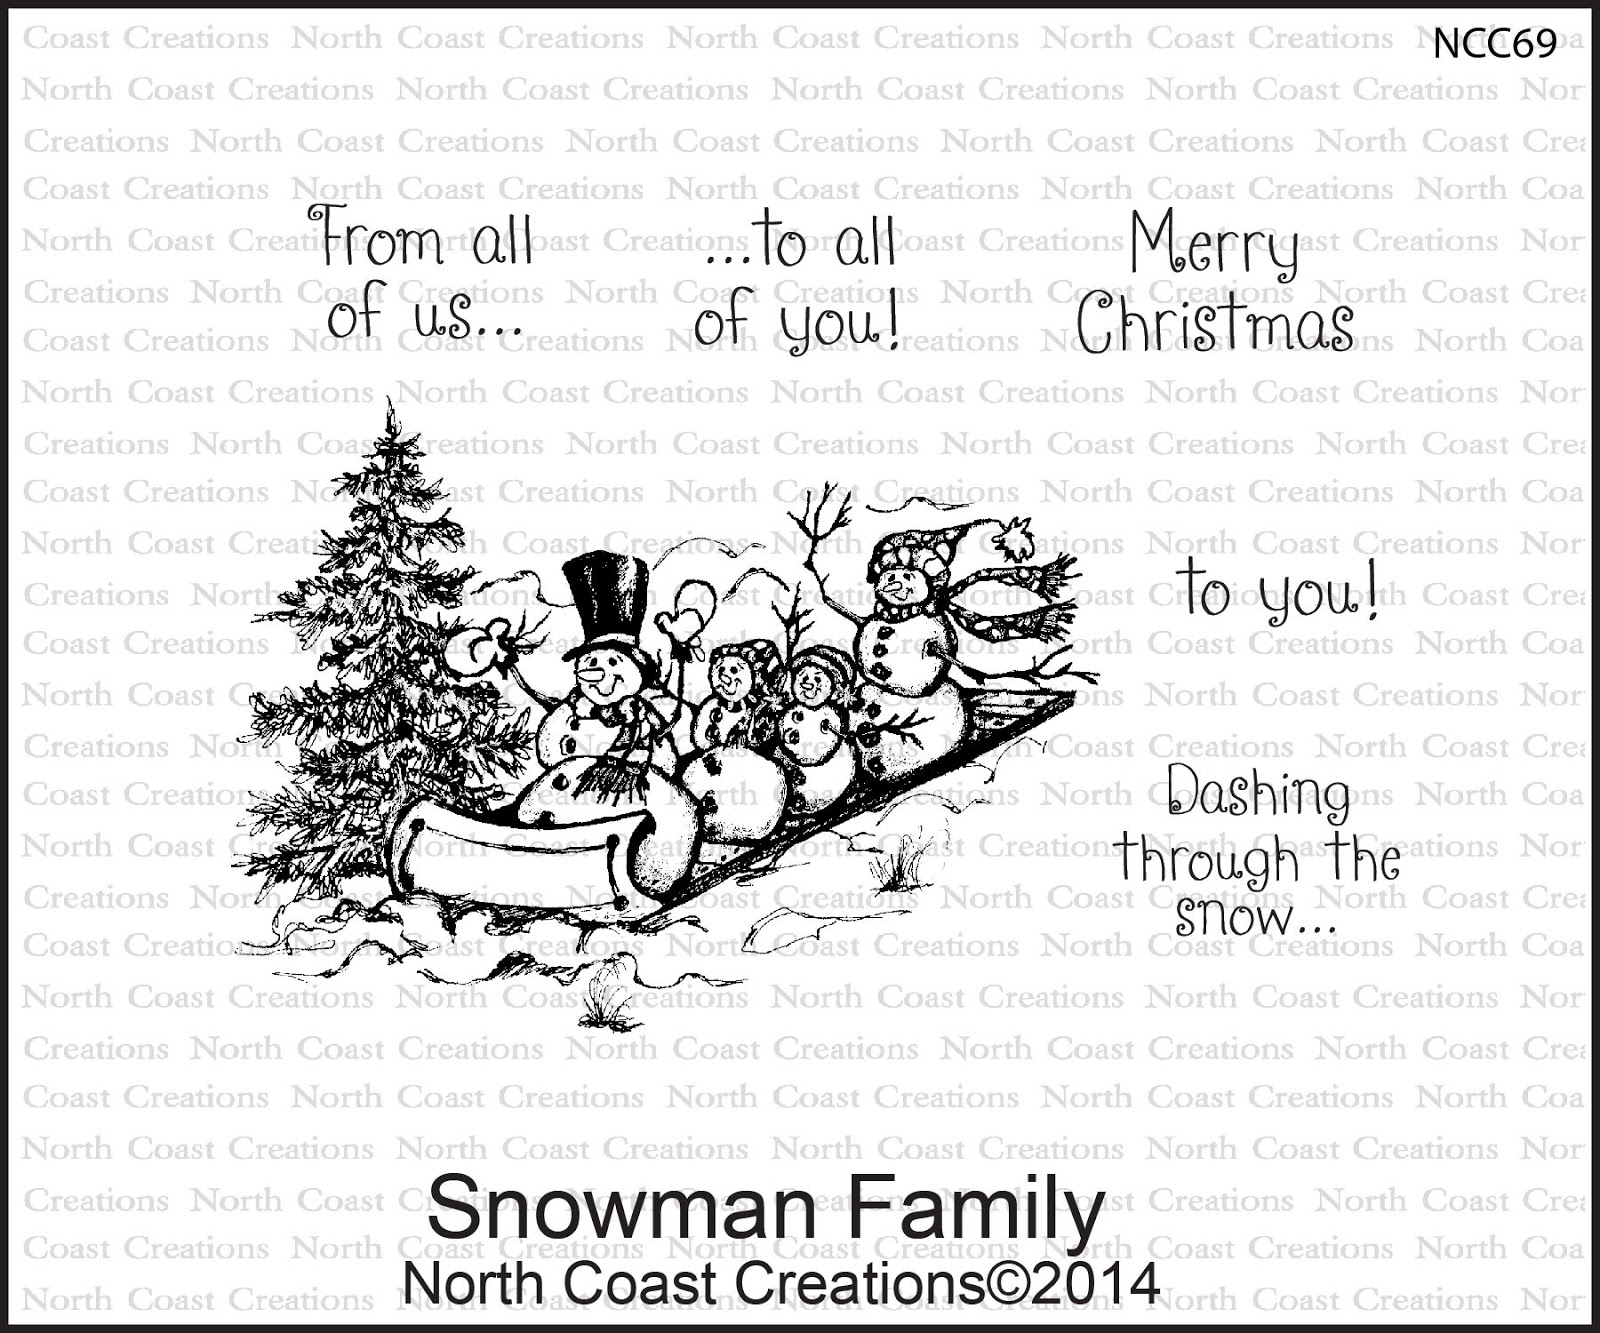 https://www.northcoastcreations.com/index.php/new-releases/ncc69-snowman-family.html